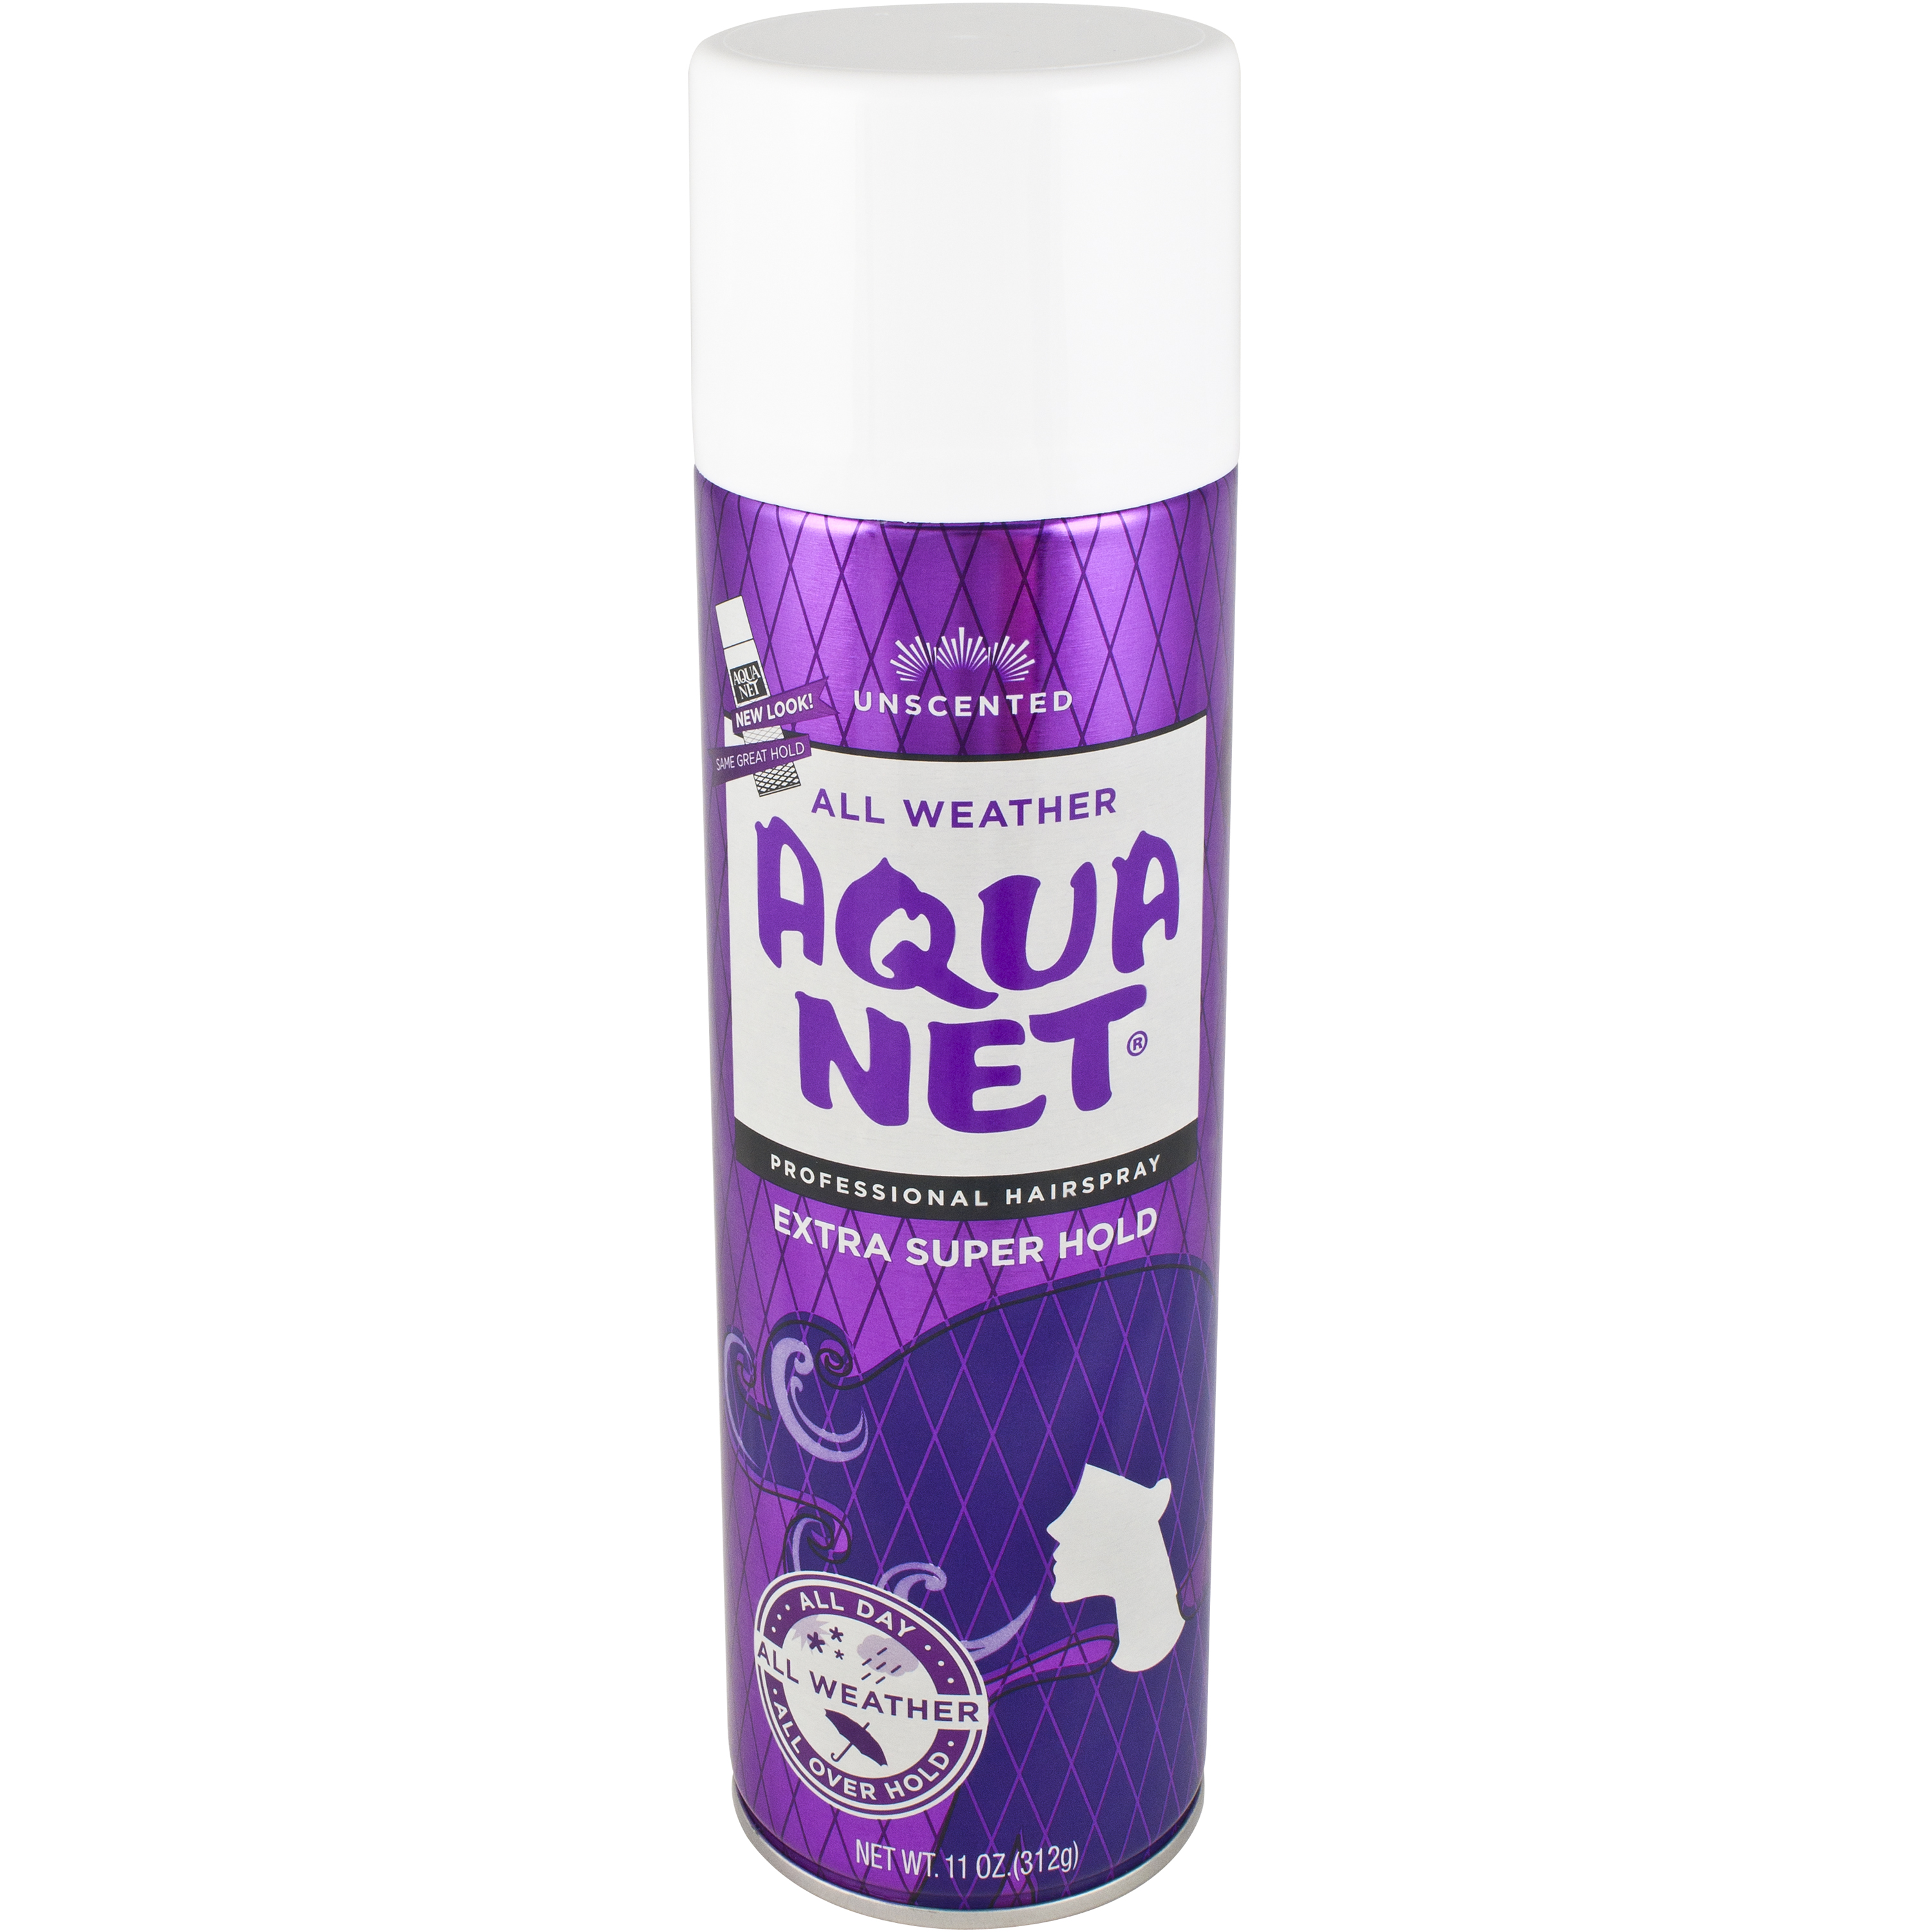 Aqua Net Professional Hairspray Extra Super Hold Unscented, 11.0 OZ